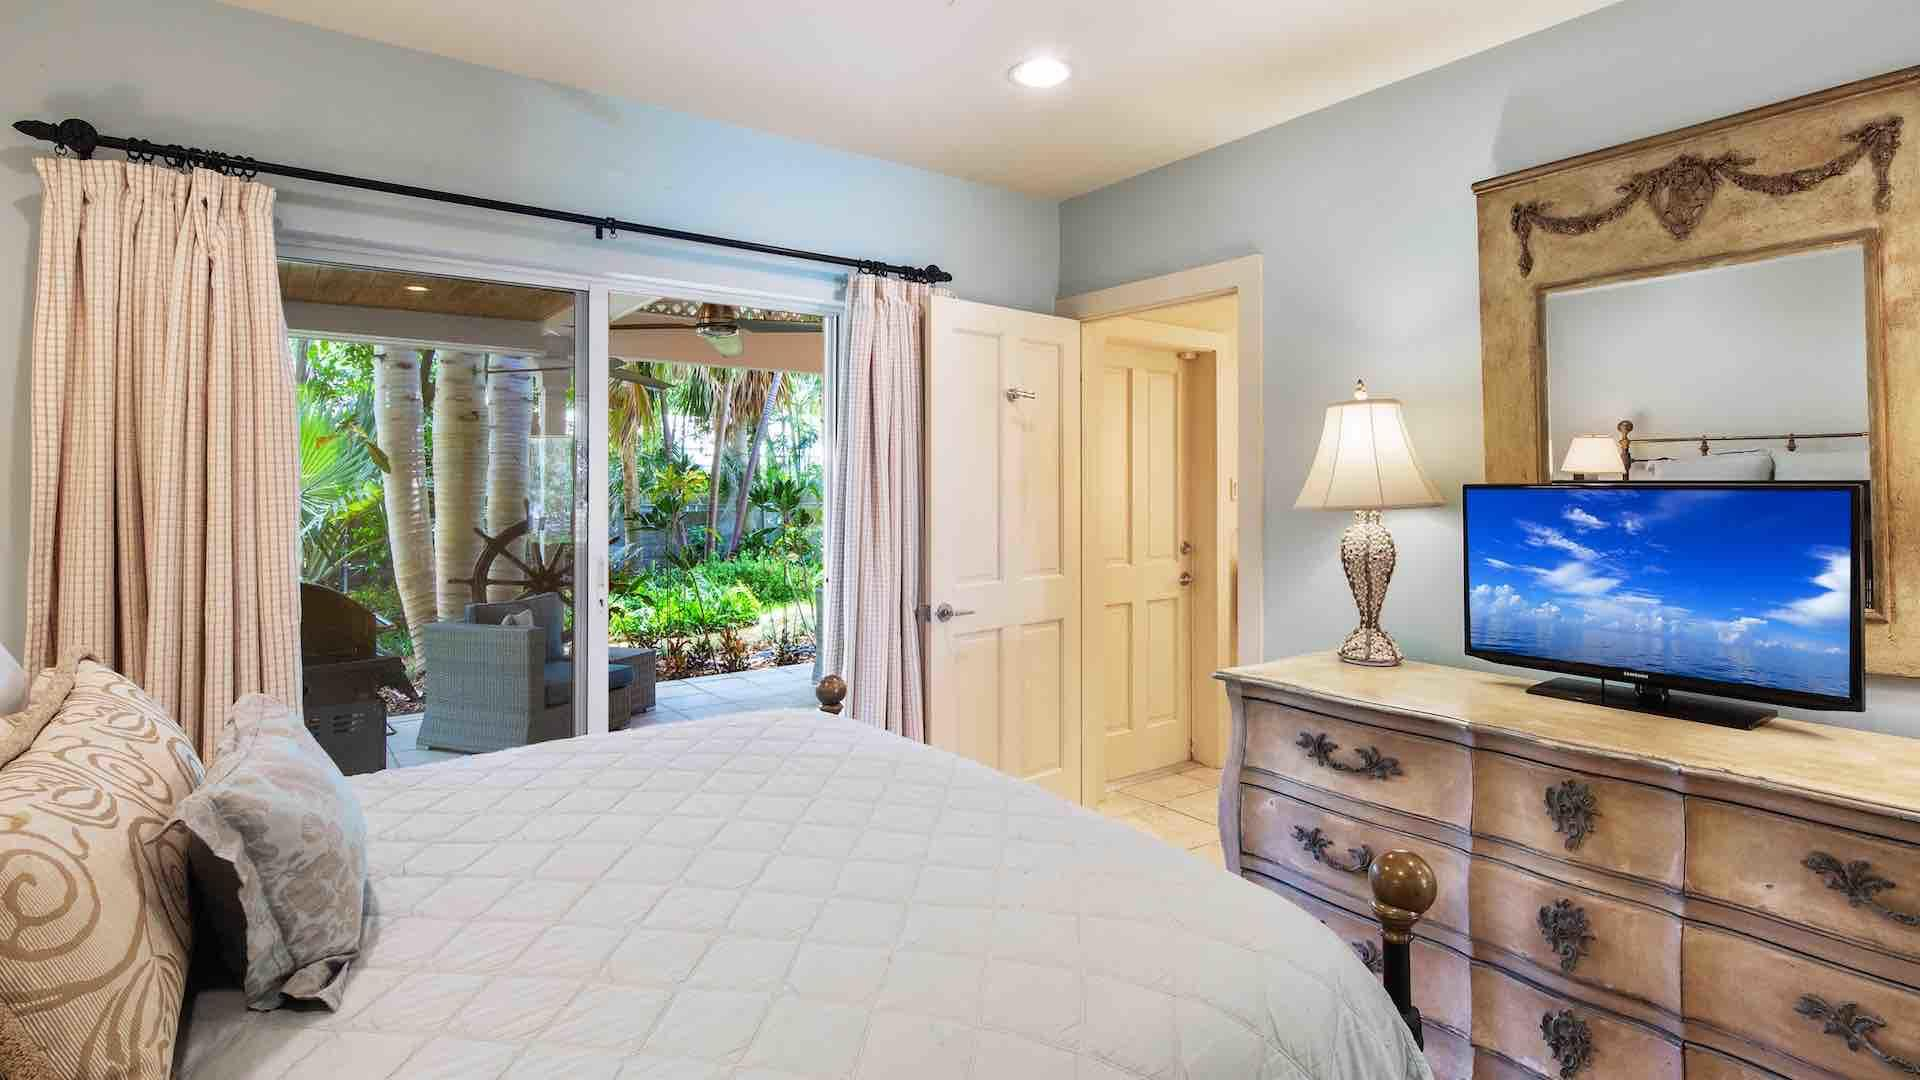 The second bedroom features Queen bed, ceiling fan & a flat screen TV...